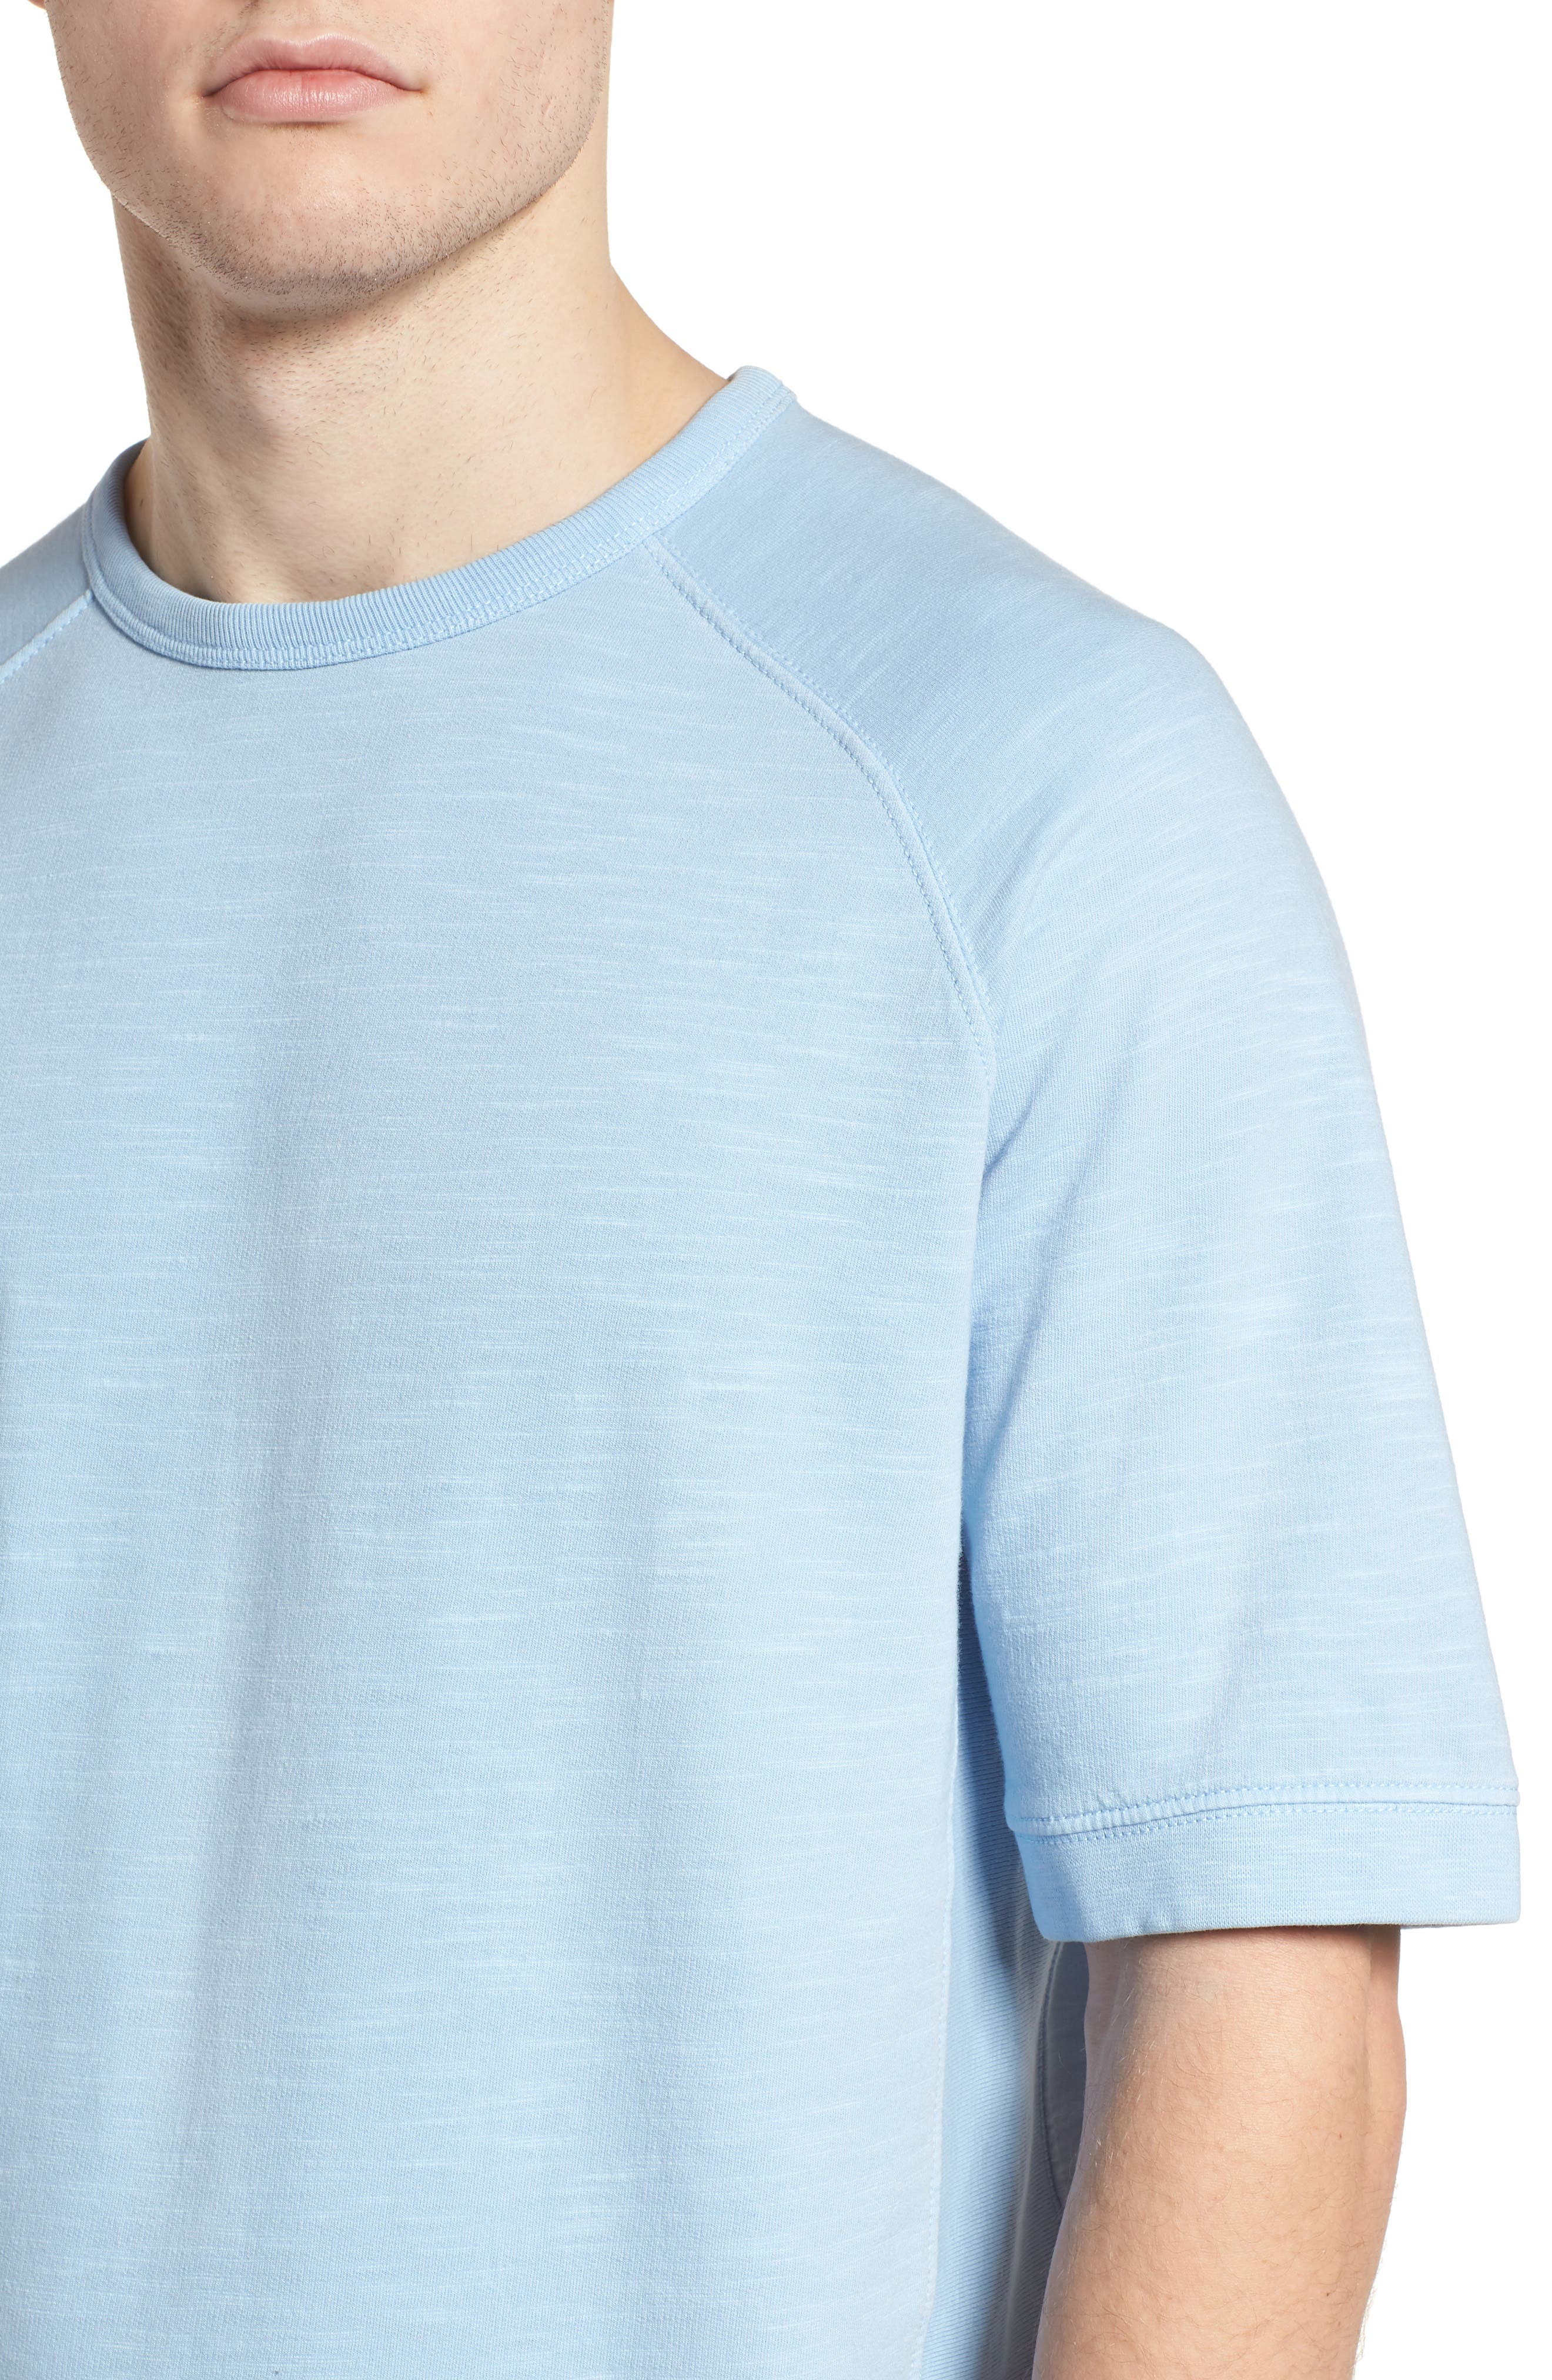 Workout Relaxed Fit Crewneck T-Shirt,                             Alternate thumbnail 4, color,                             Sky Blue